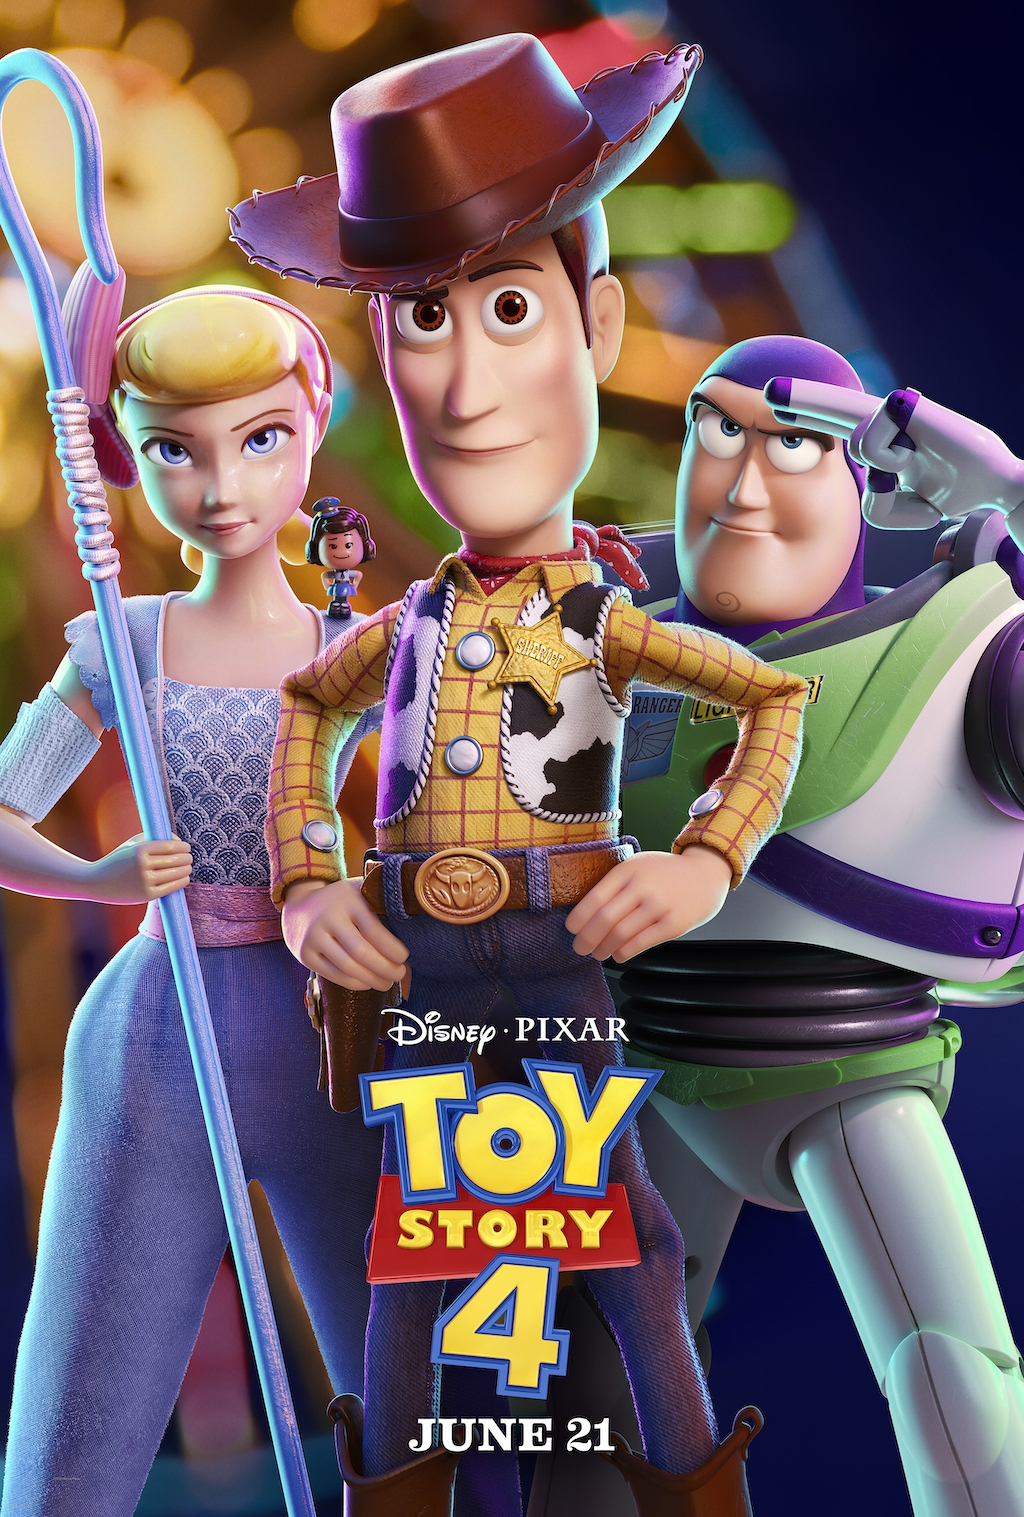 The Toy Story franchise has been extremely successful - and now the fourth installment Toy Story 4 is about to hit theaters!